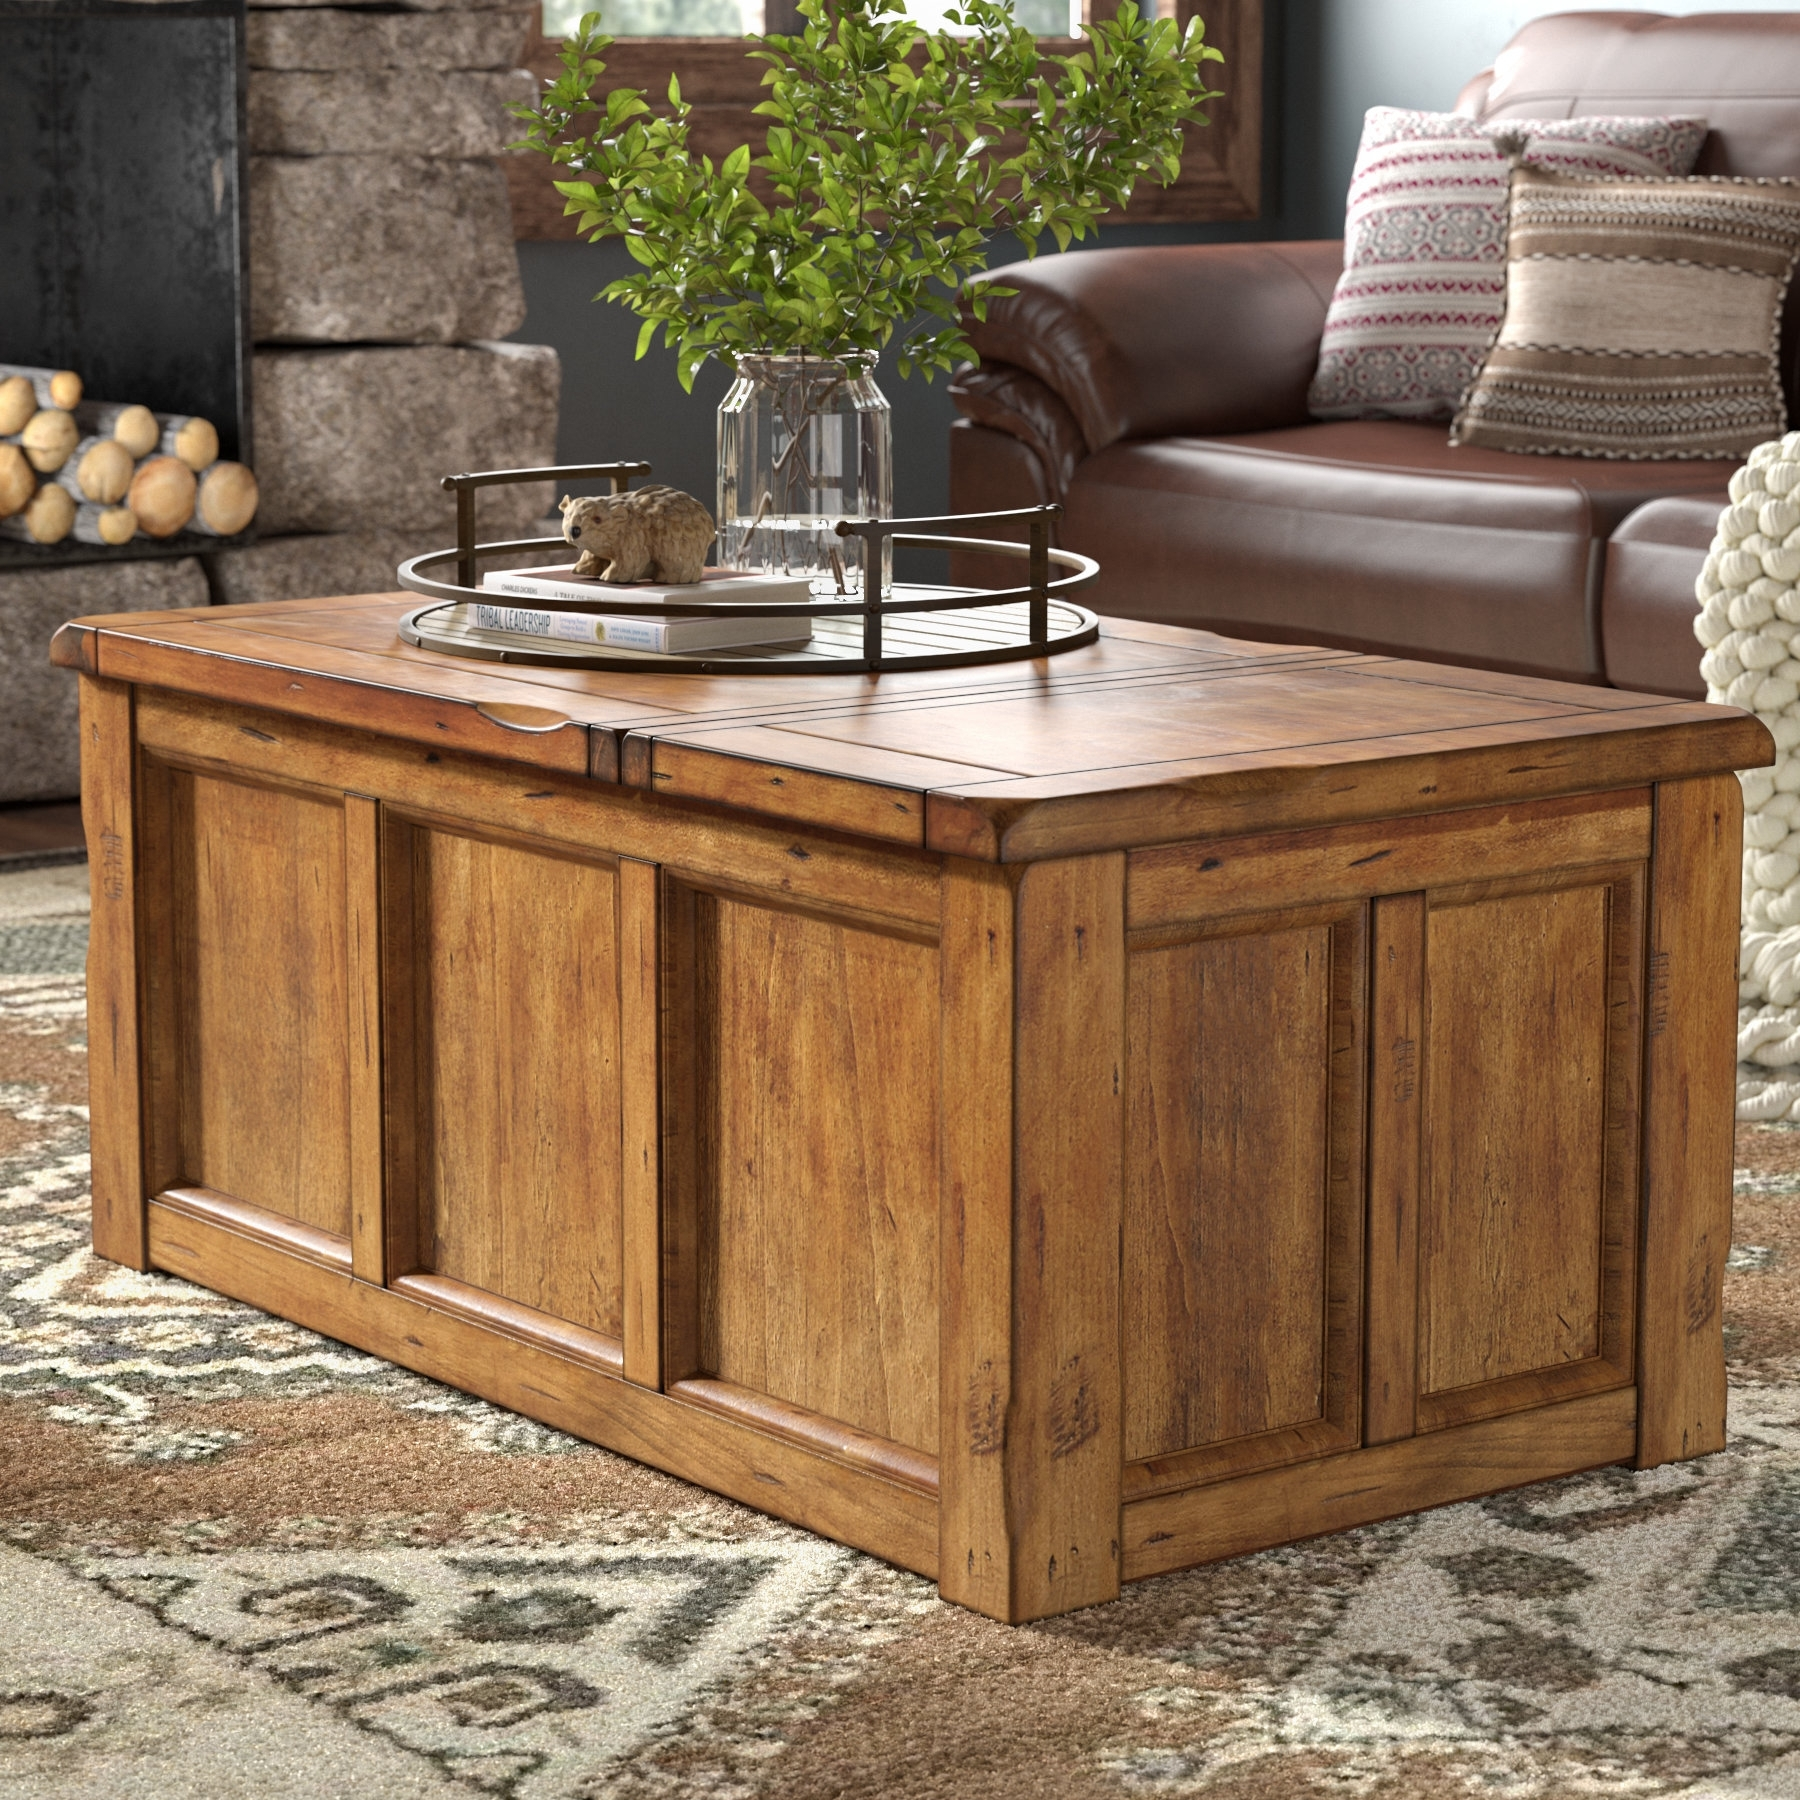 Laurel Foundry Modern Farmhouse Baggarly Coffee Table With Lift Top inside Chiseled Edge Coffee Tables (Image 12 of 30)